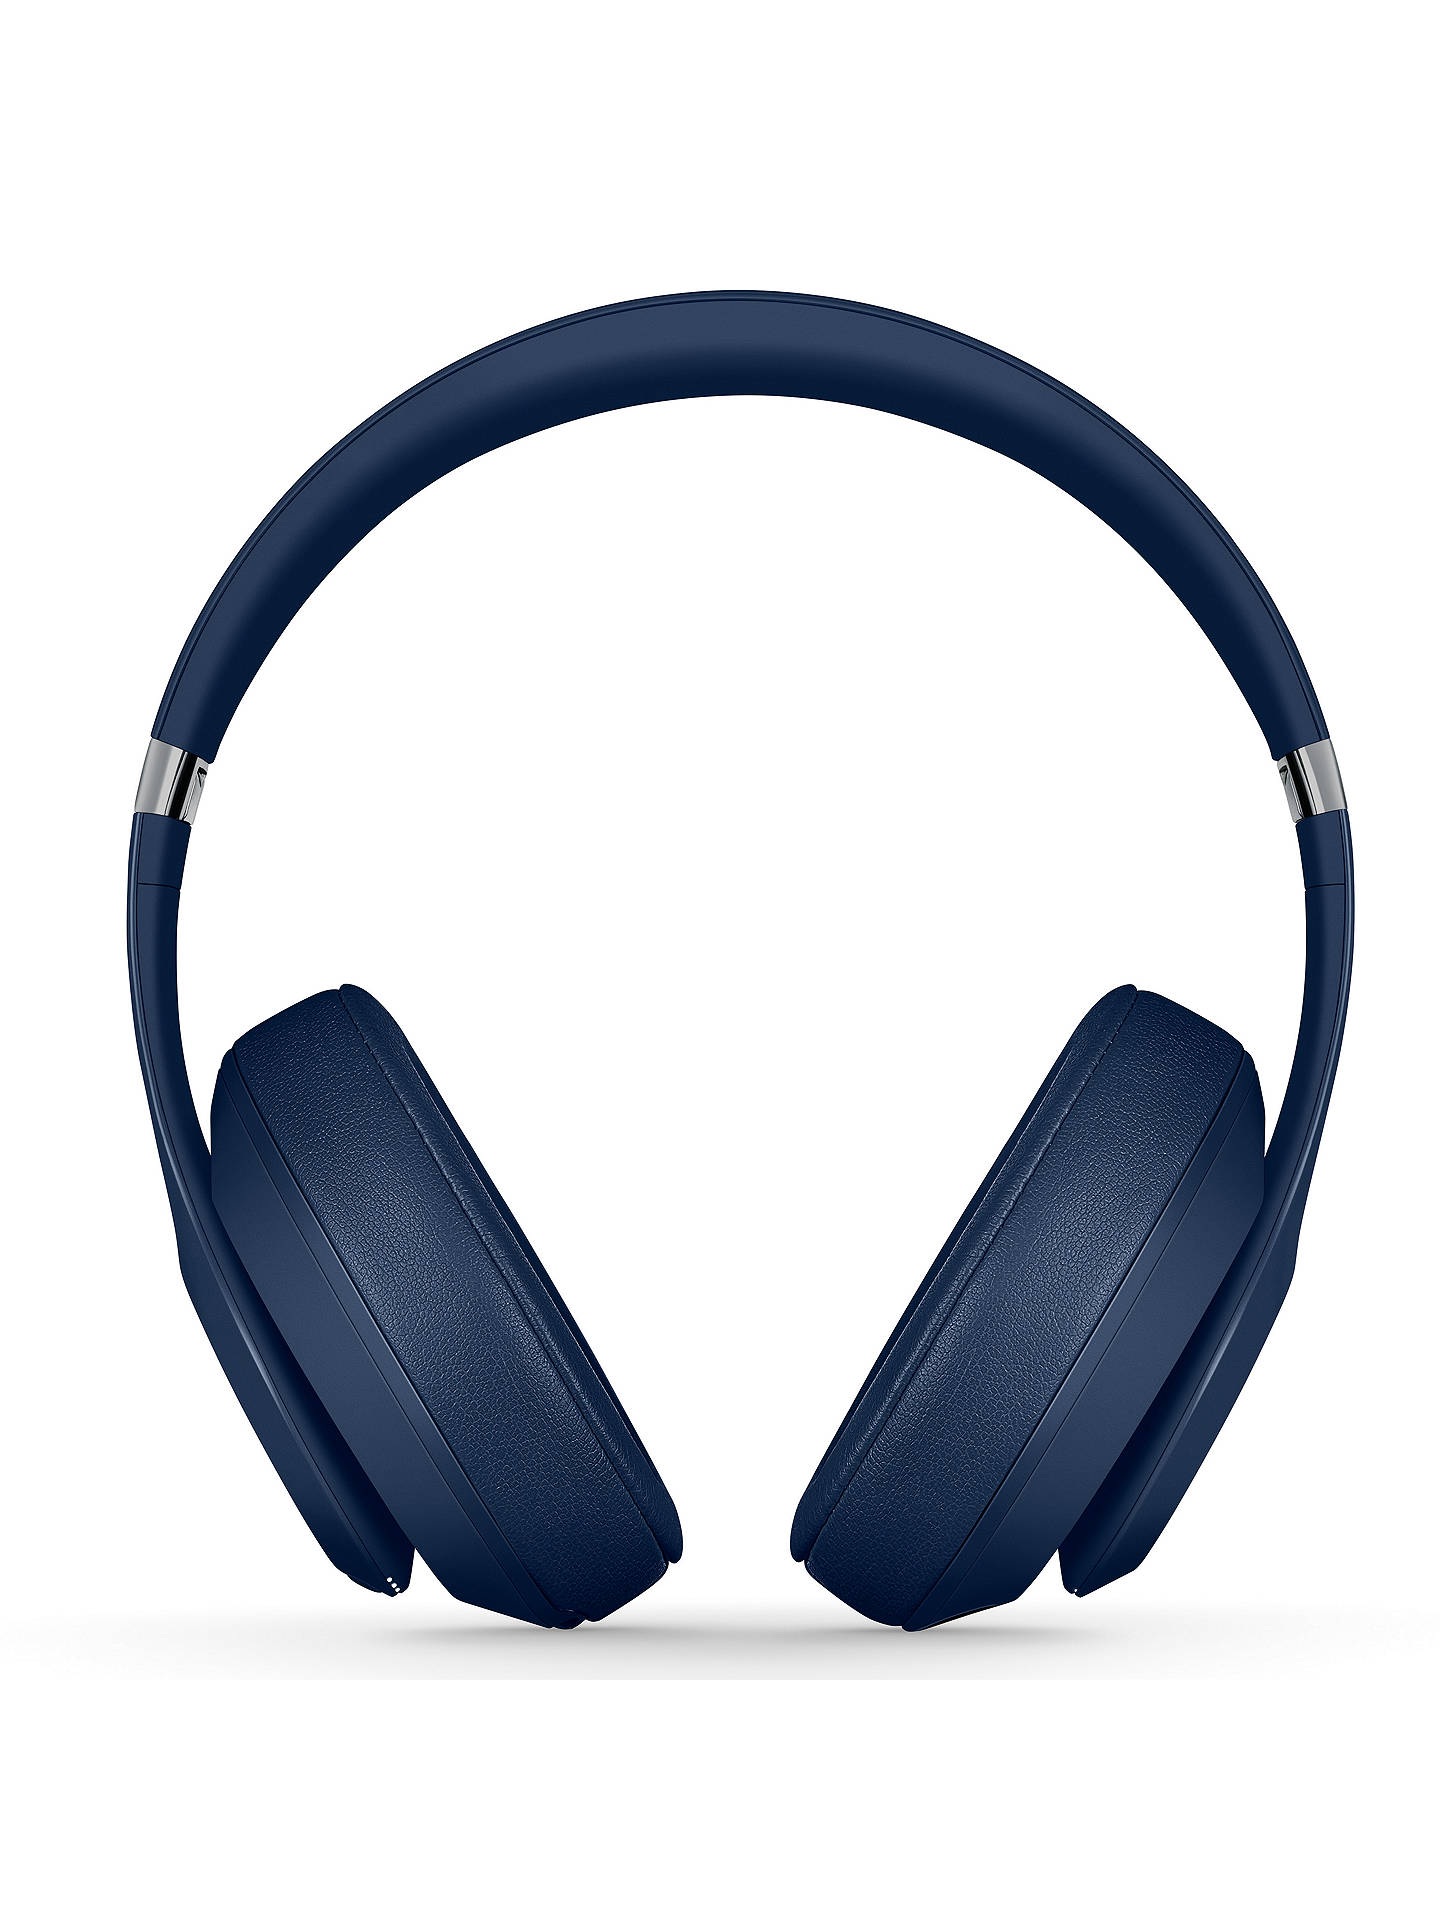 BuyBeats Studio³  Wireless Bluetooth Over-Ear Headphones with Pure Adaptive Noise Cancelling & Mic/Remote, Blue Online at johnlewis.com